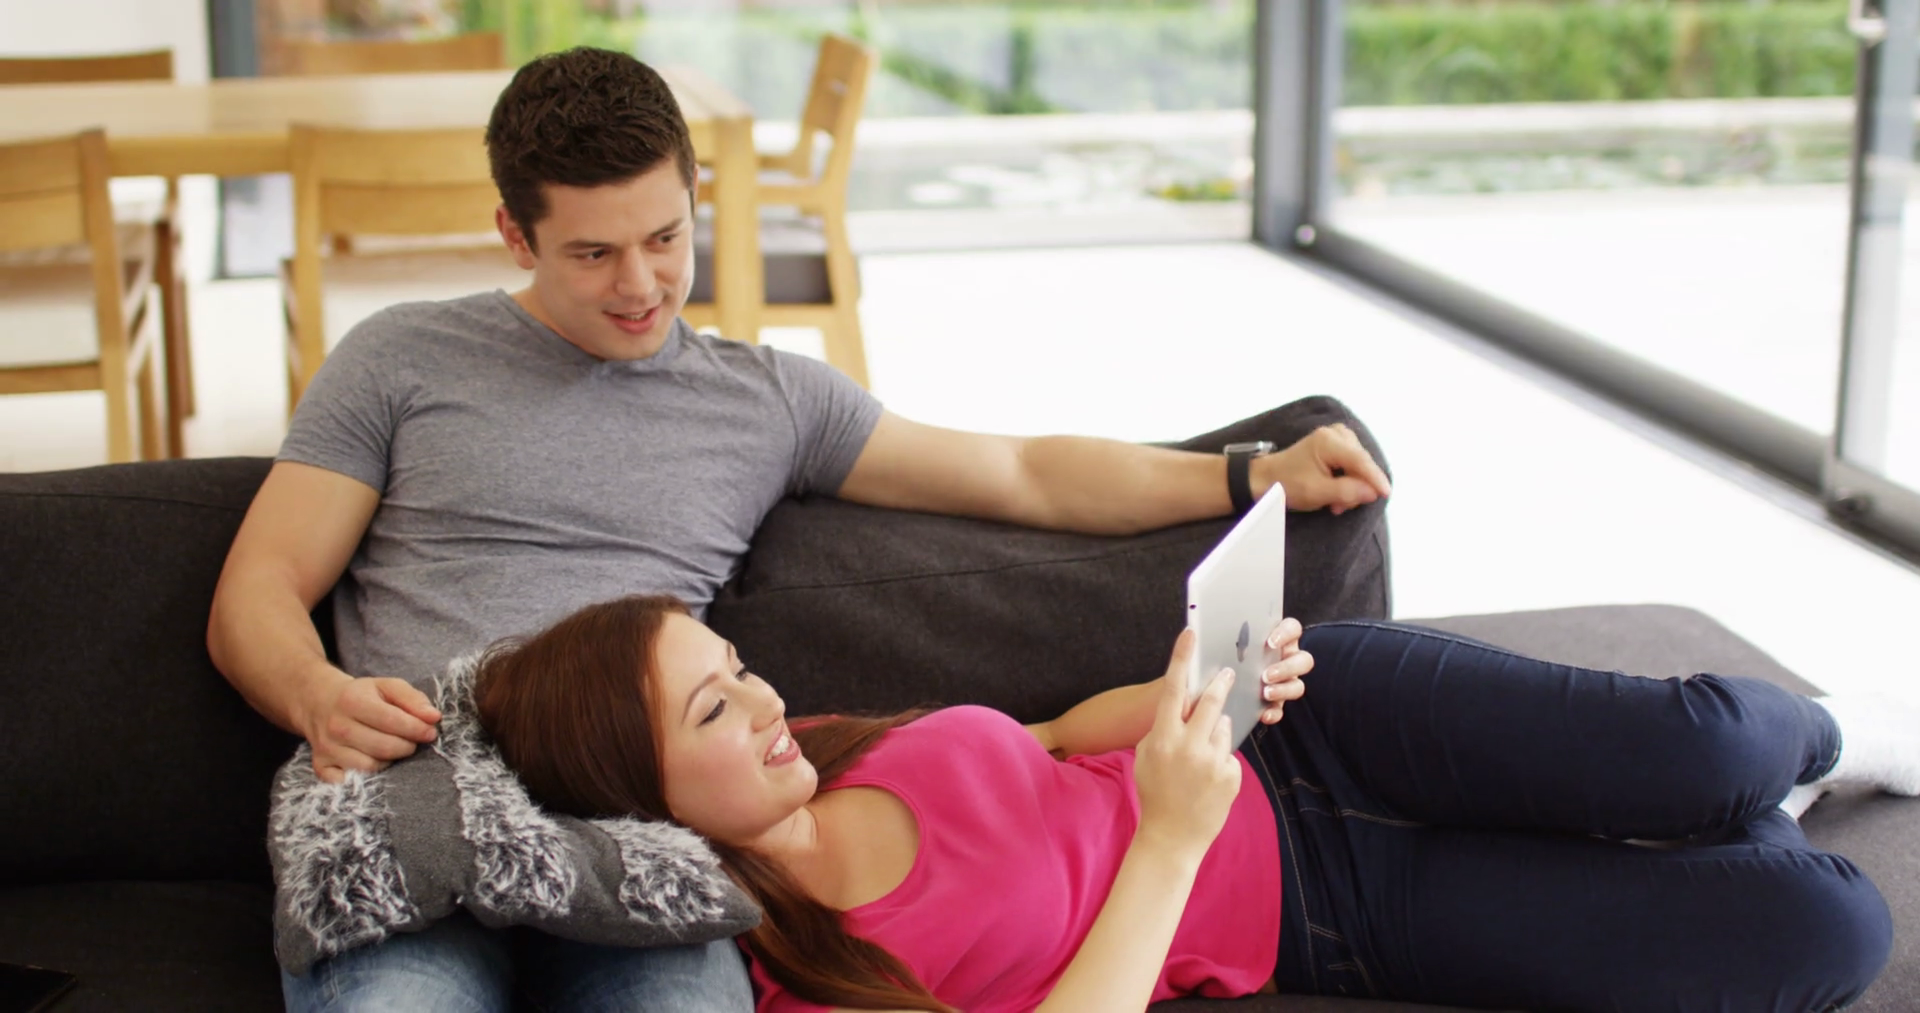 Young couple sitting on cough looking at Ipad